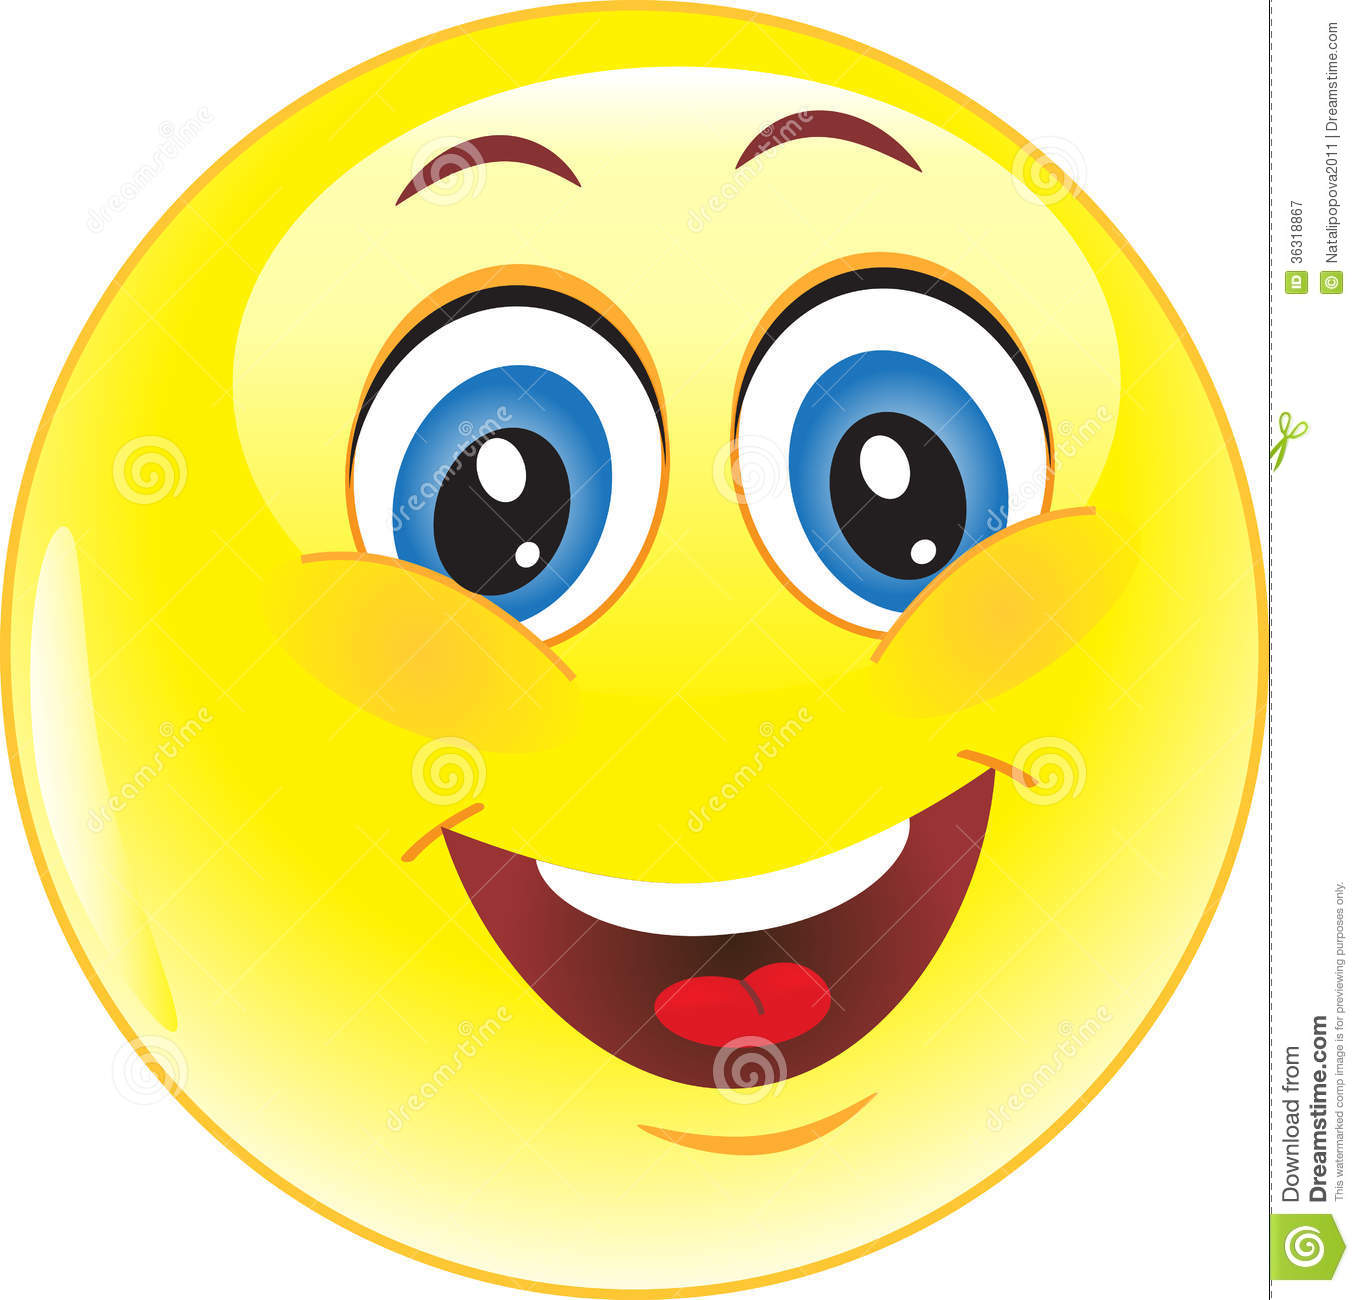 Vector Yellow Smiley Royalty Free Stock Photography - Image: 36318867